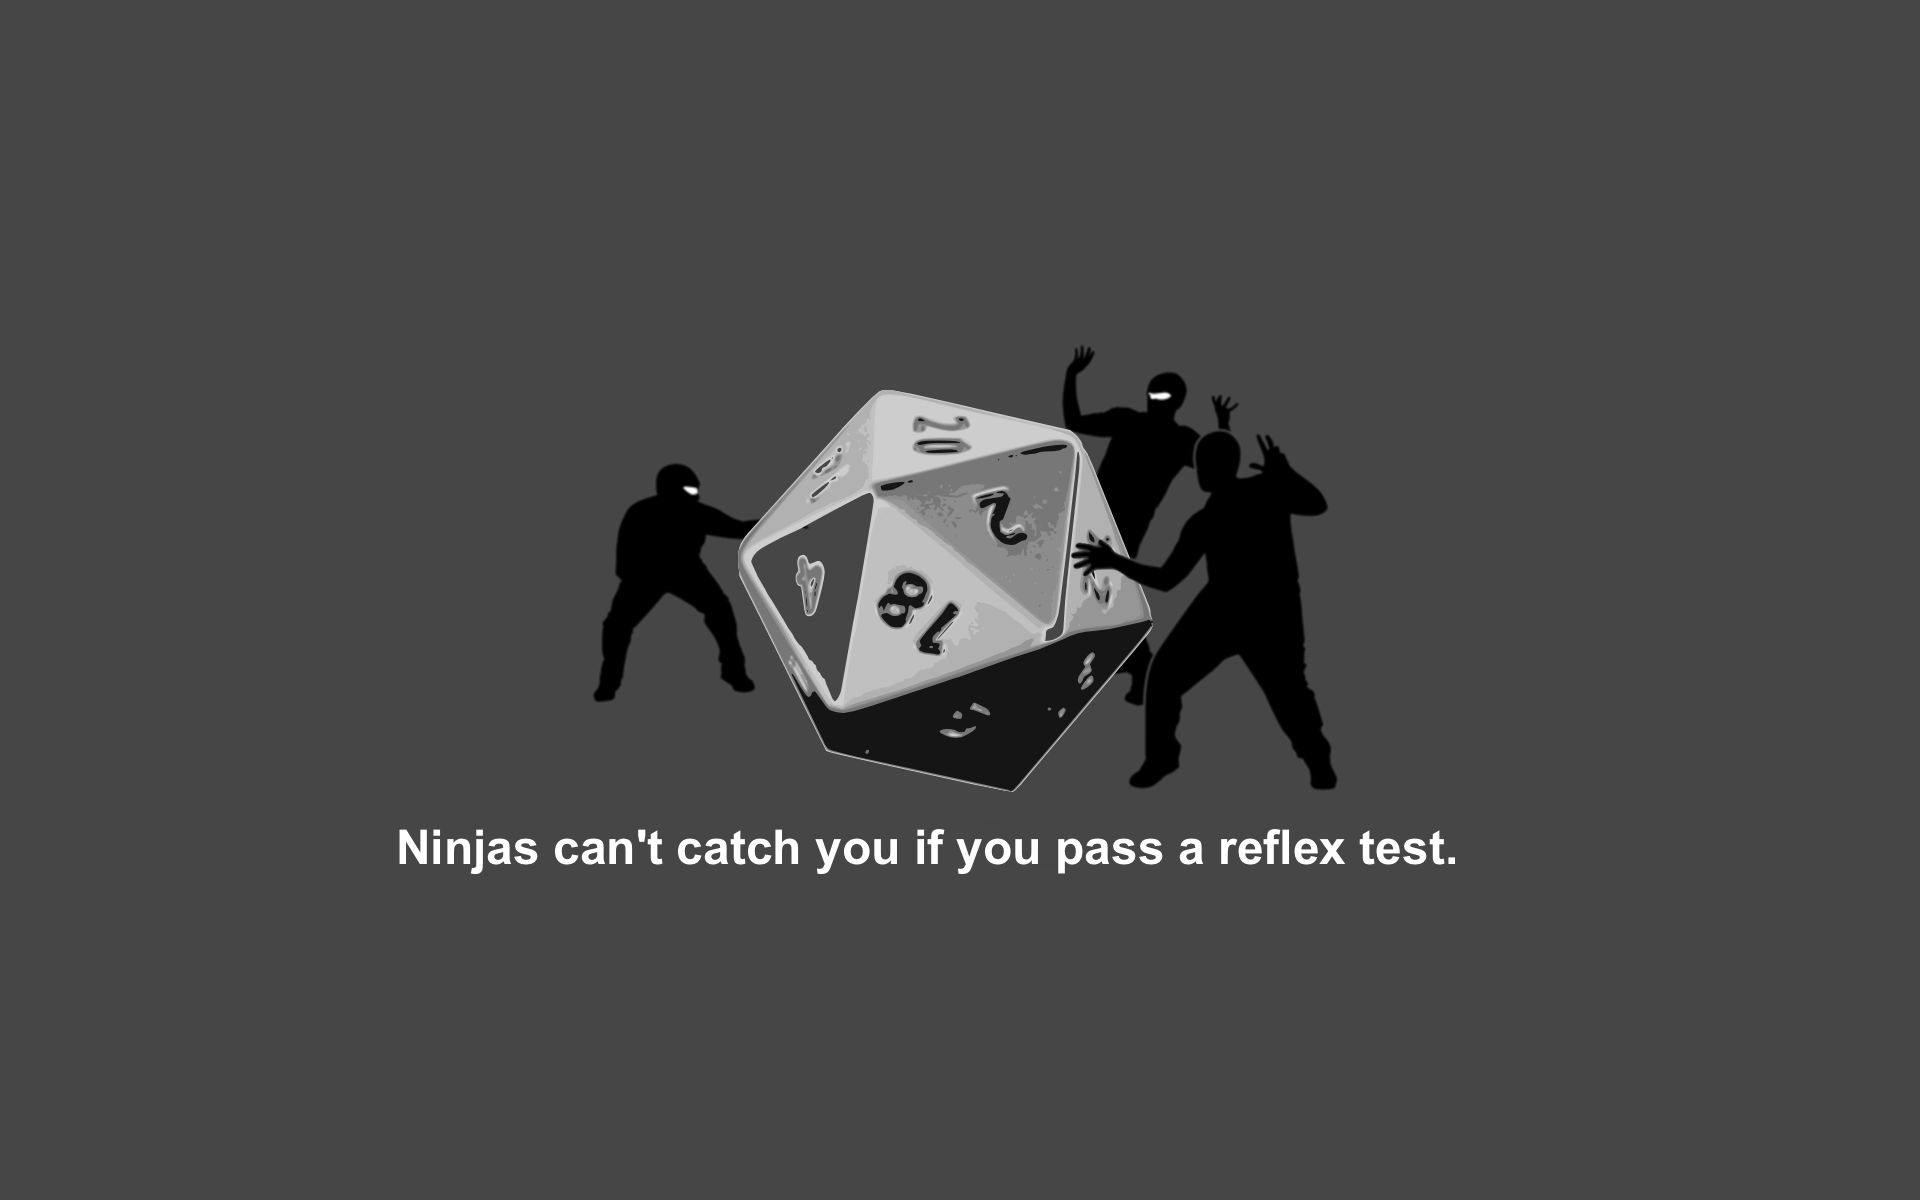 ninjas dice ninjas cant catch you if Dungeons and Dragons Free